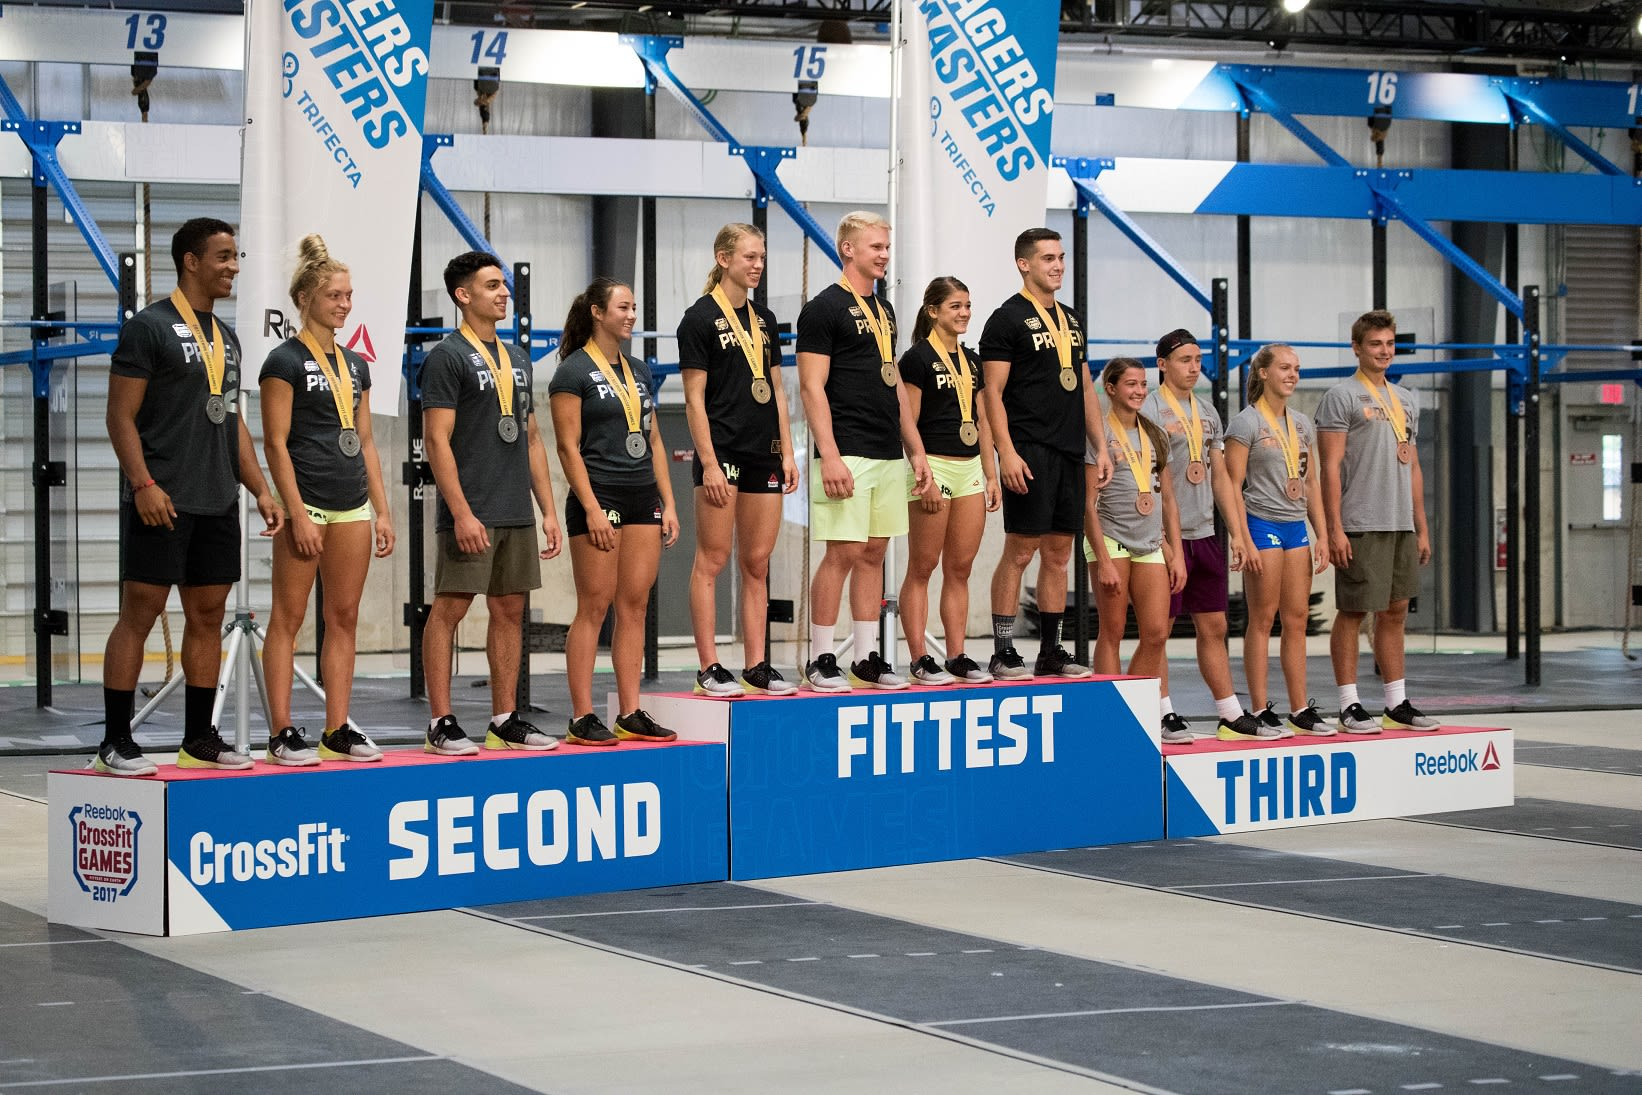 angelo-dicicco-crossfit-games-podium